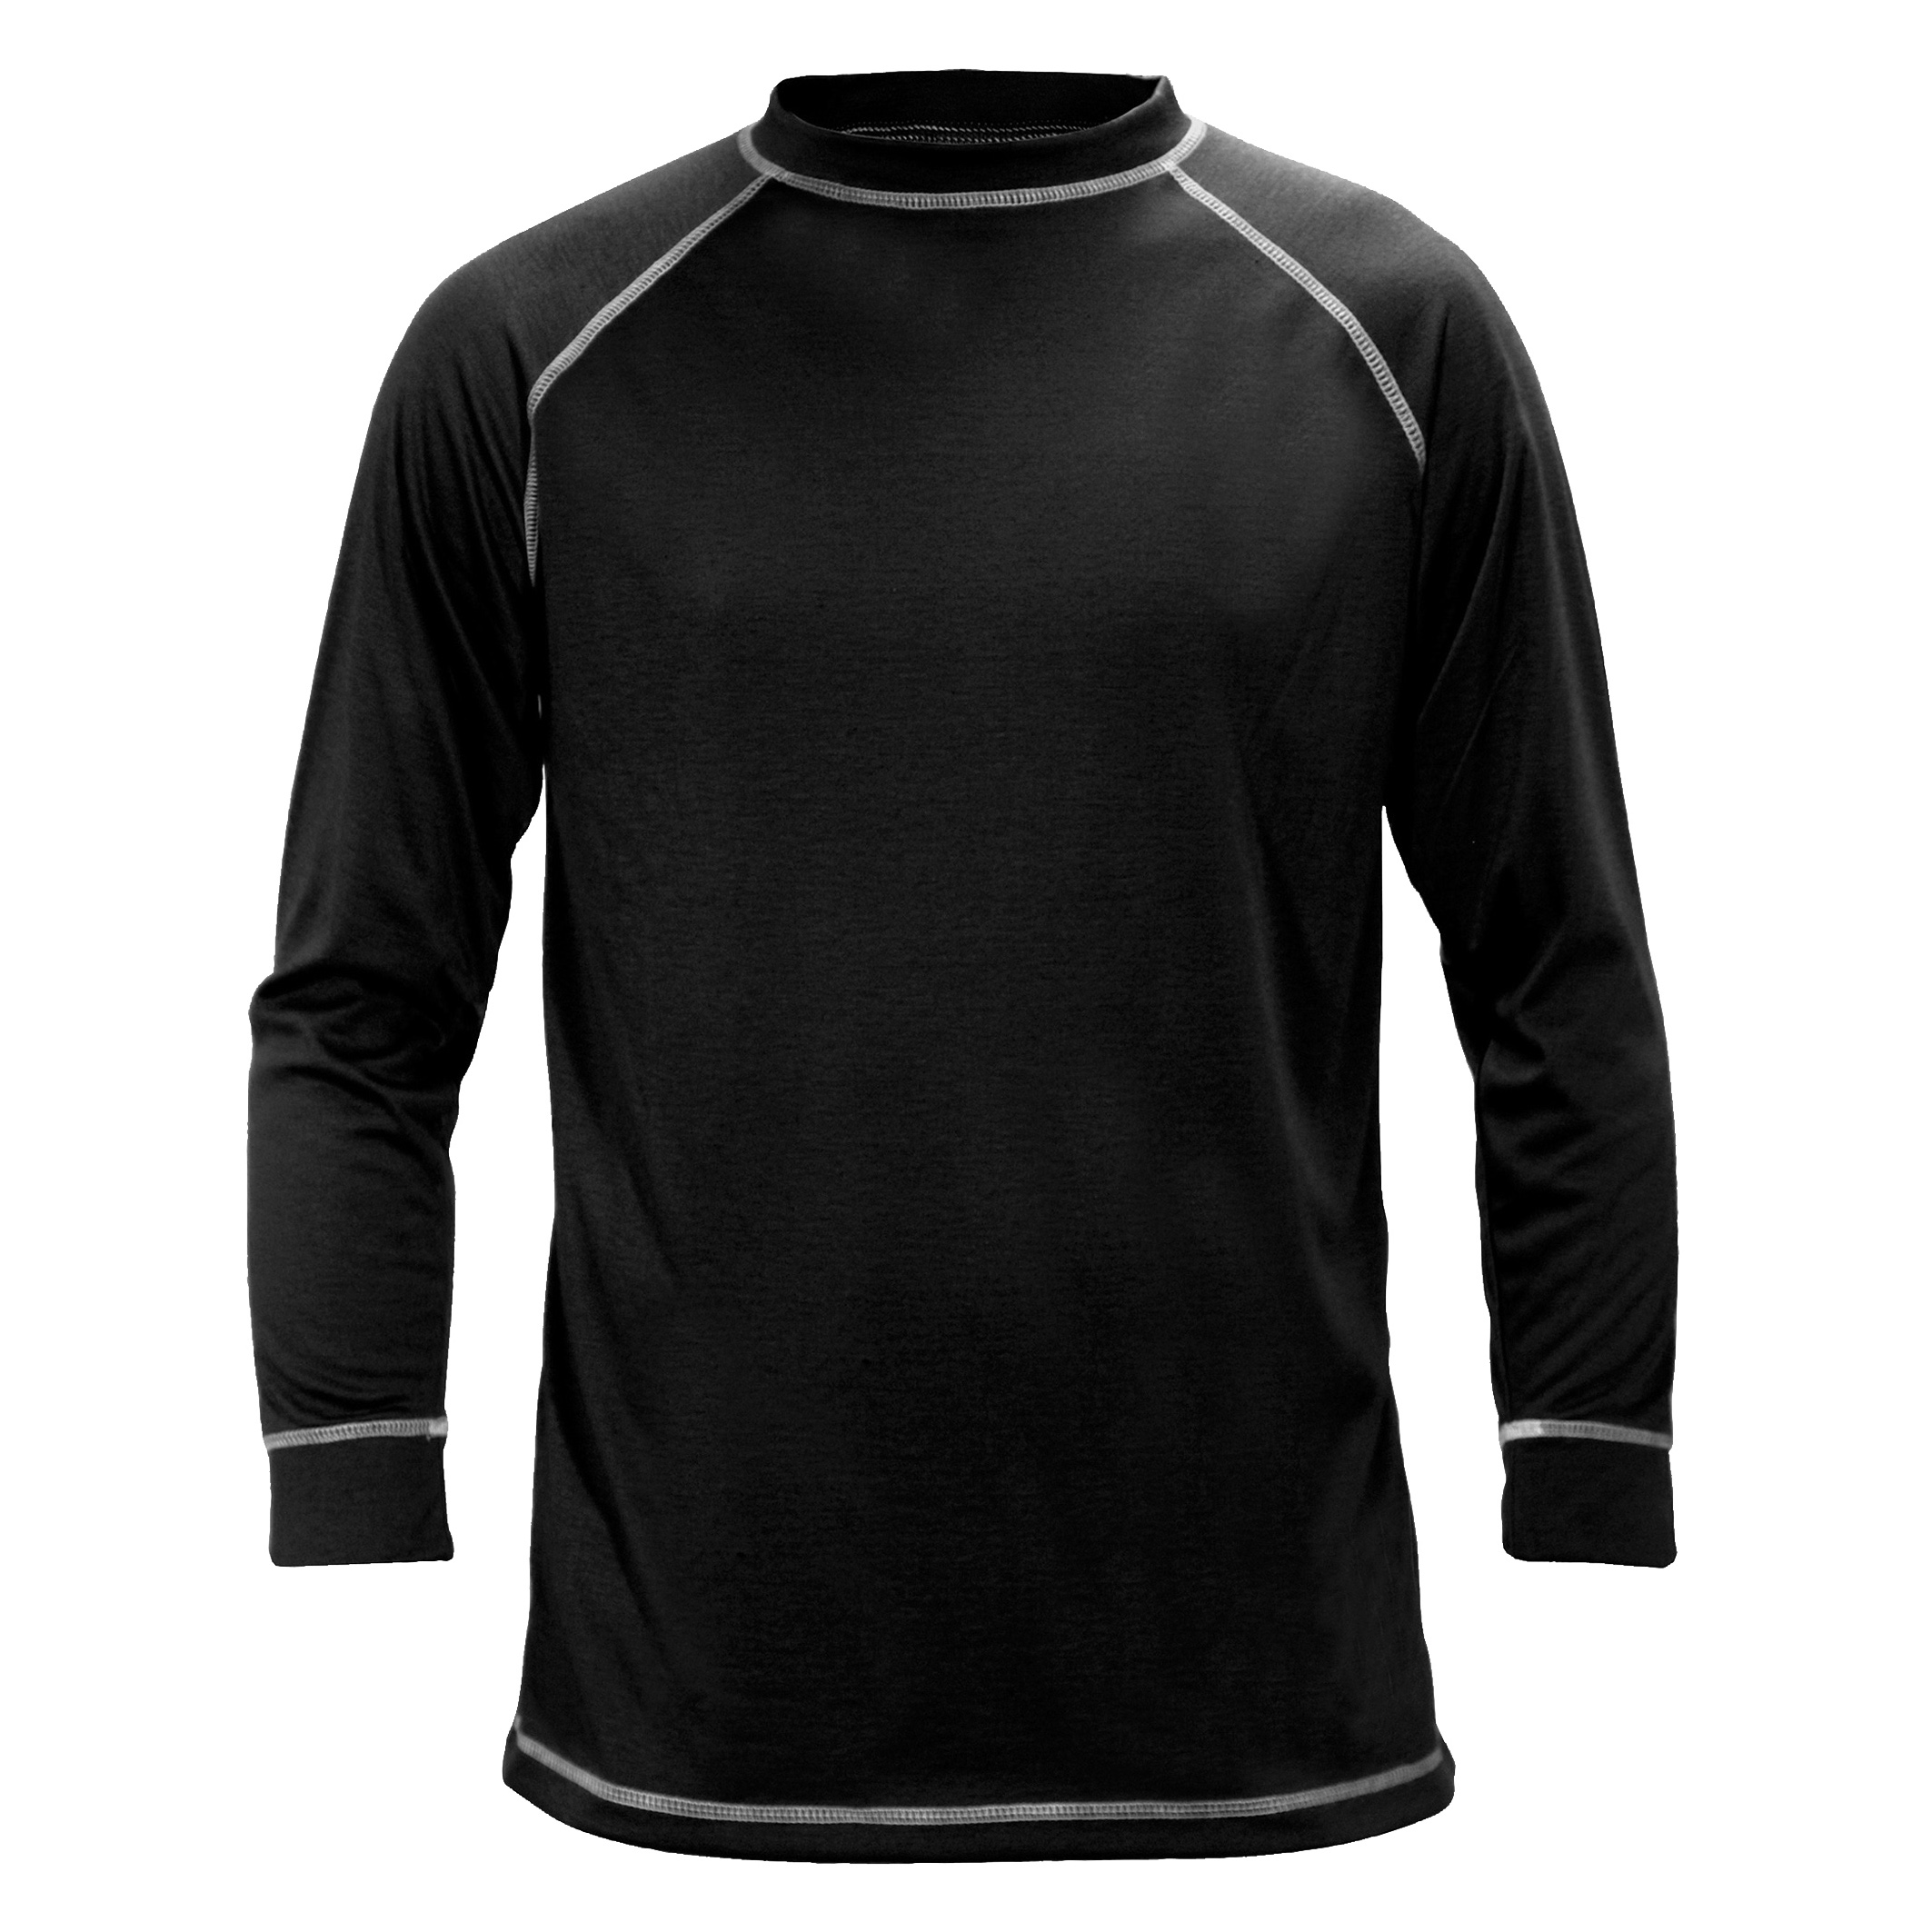 Base and Mid Layer Clothing